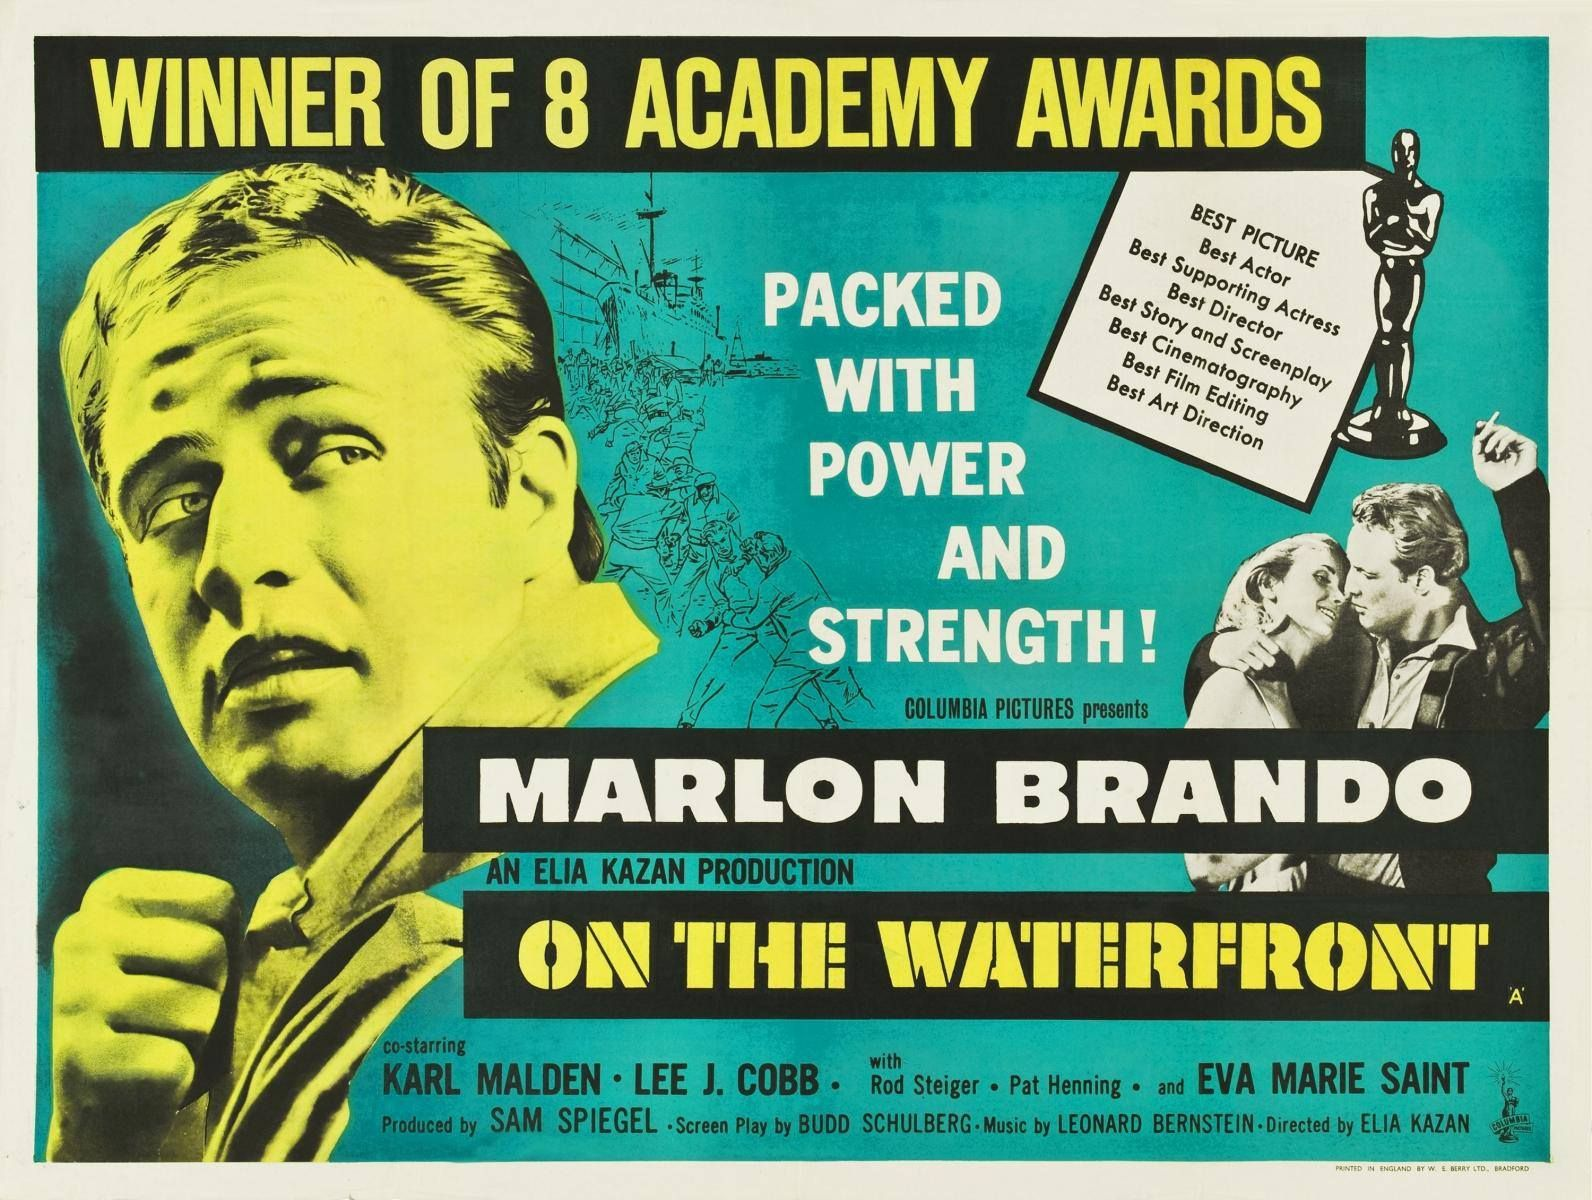 Marlon Brando — with Marlon Brando, Eva Marie Saint and Lee J. Cobb ...